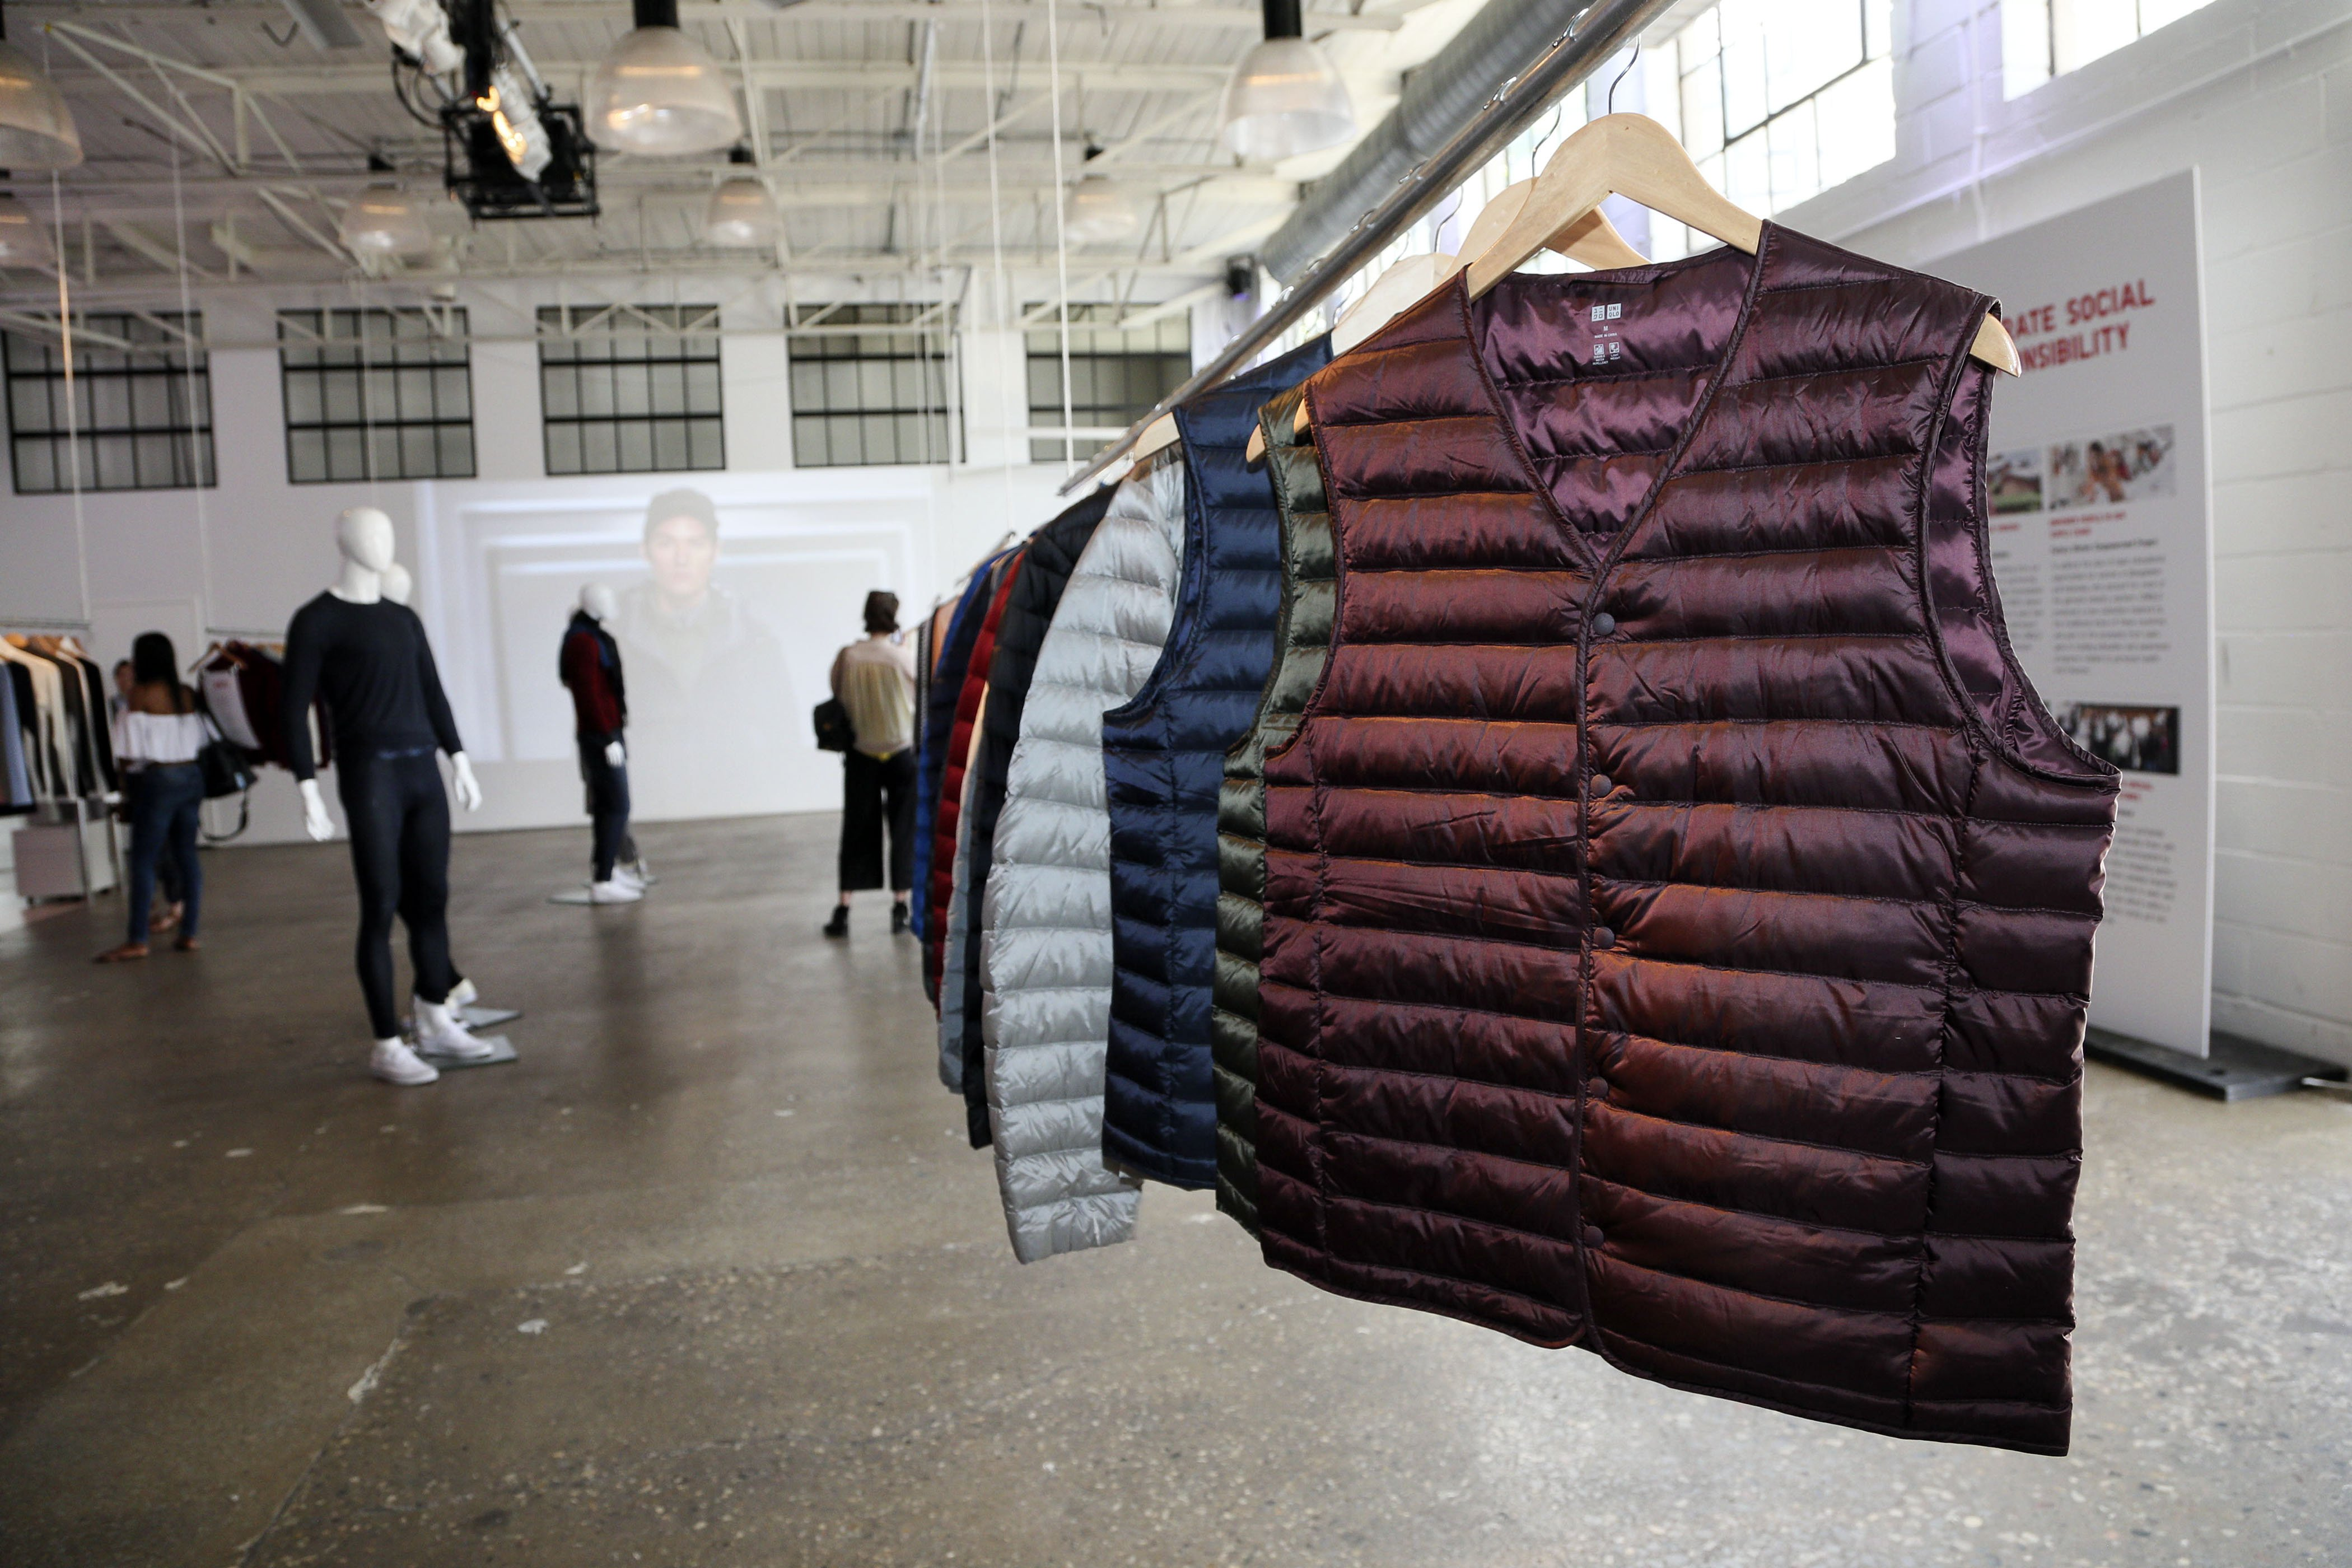 Uniqlo puffer vests hang on a rack.